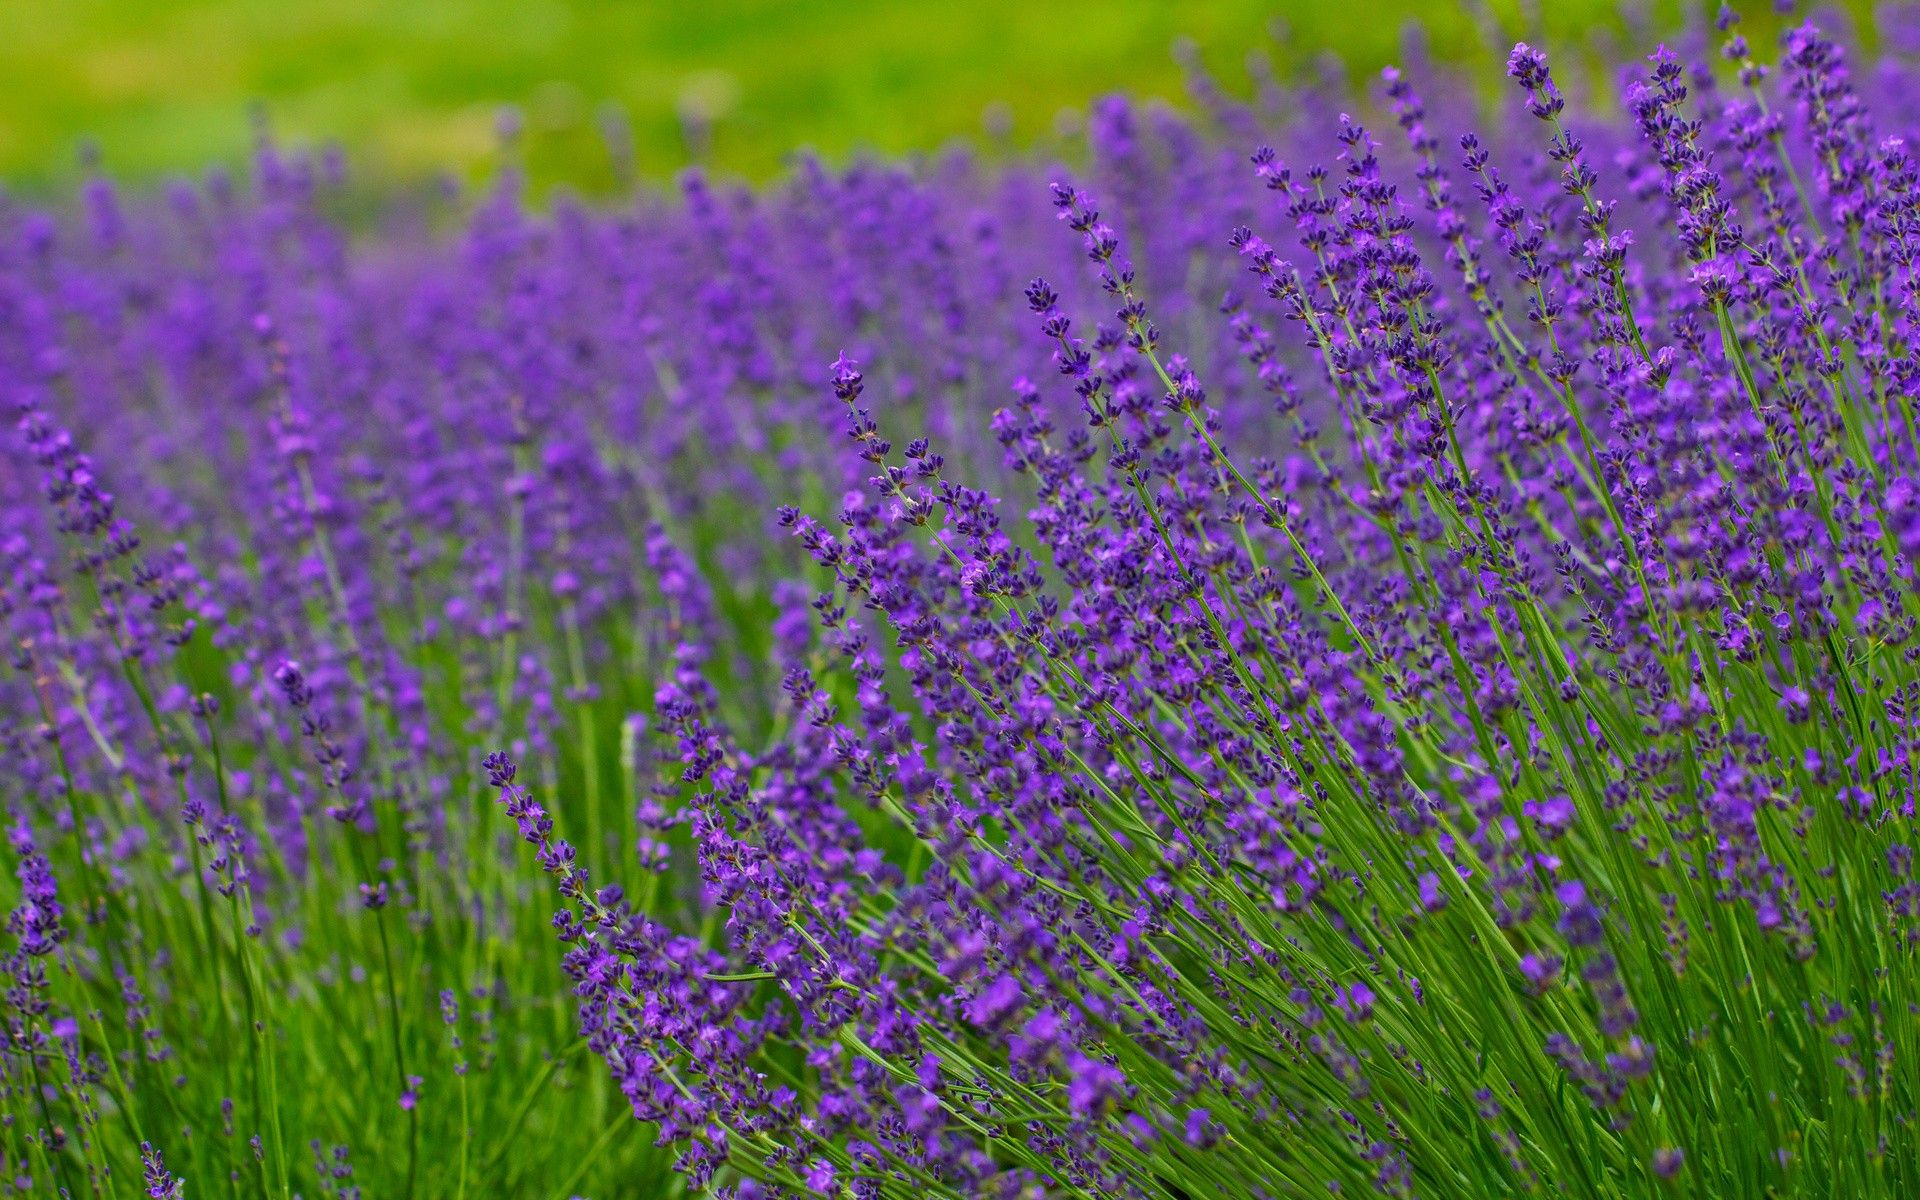 Lavender Field Hd Wallpaper Background Hd Wallpapers Lavender Flowers Field Wallpaper Lavender Fields